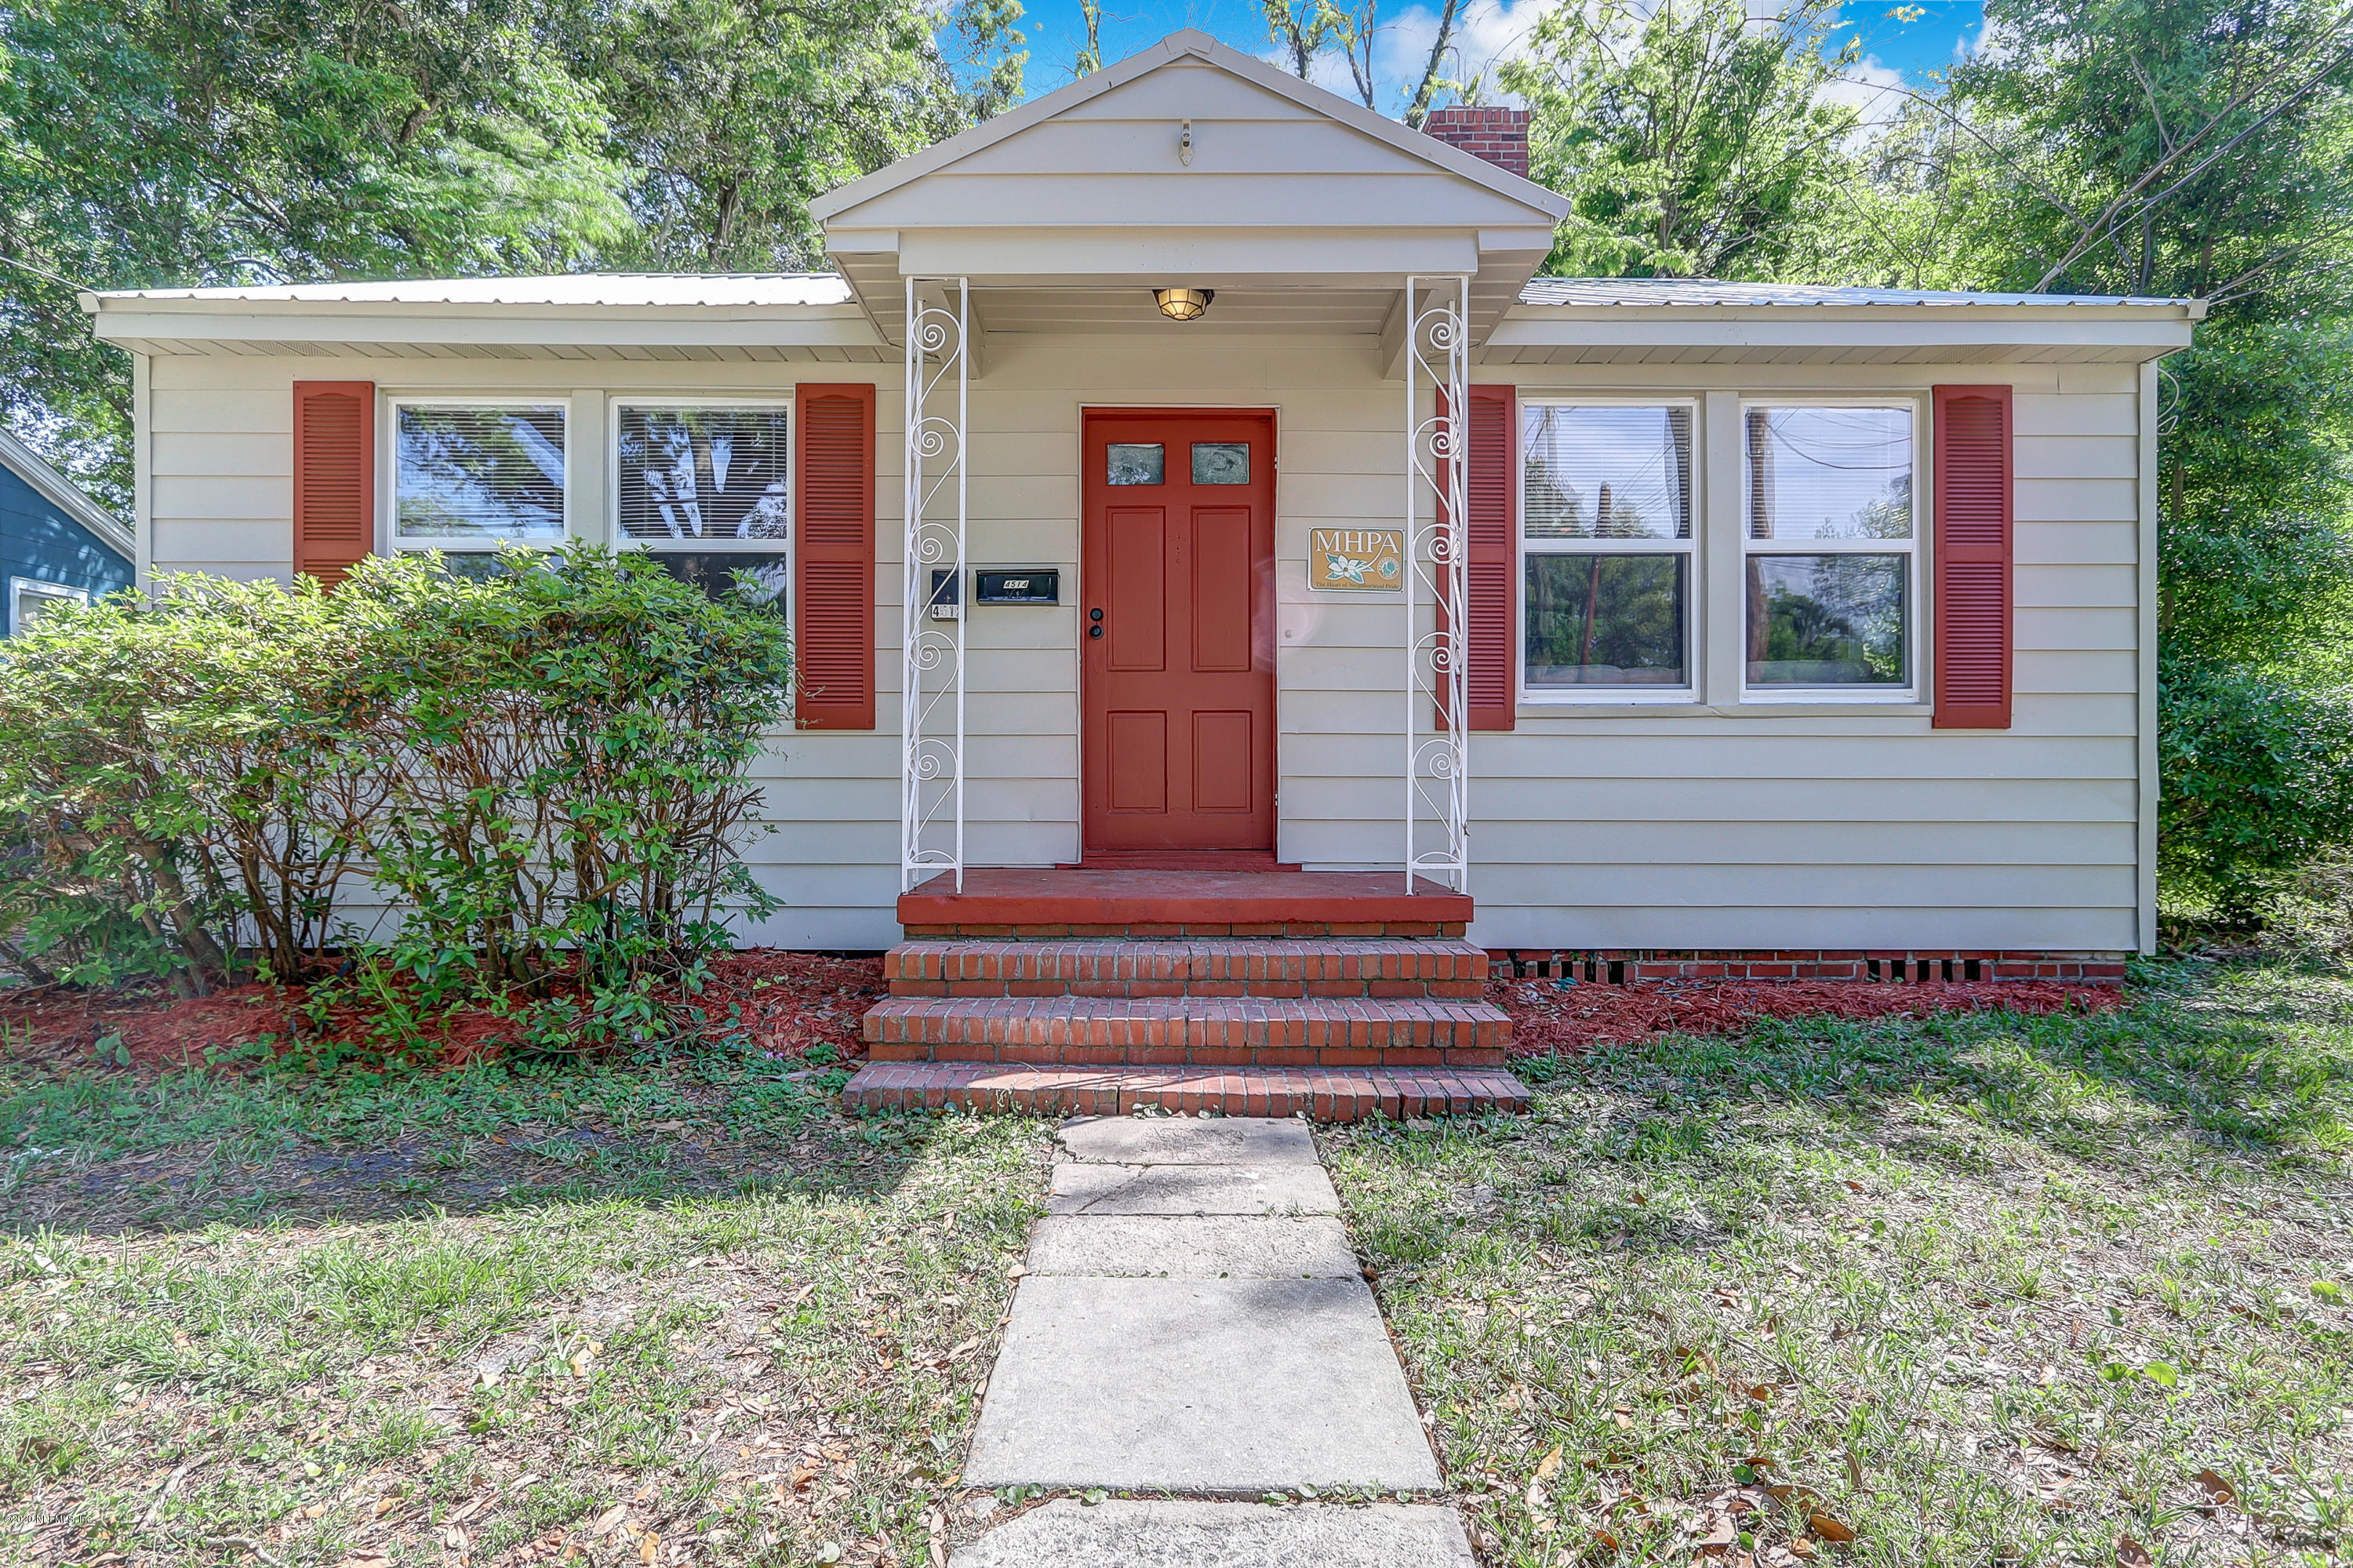 4514 COLLEGE, JACKSONVILLE, FLORIDA 32205, 3 Bedrooms Bedrooms, ,2 BathroomsBathrooms,Residential,For sale,COLLEGE,1047006